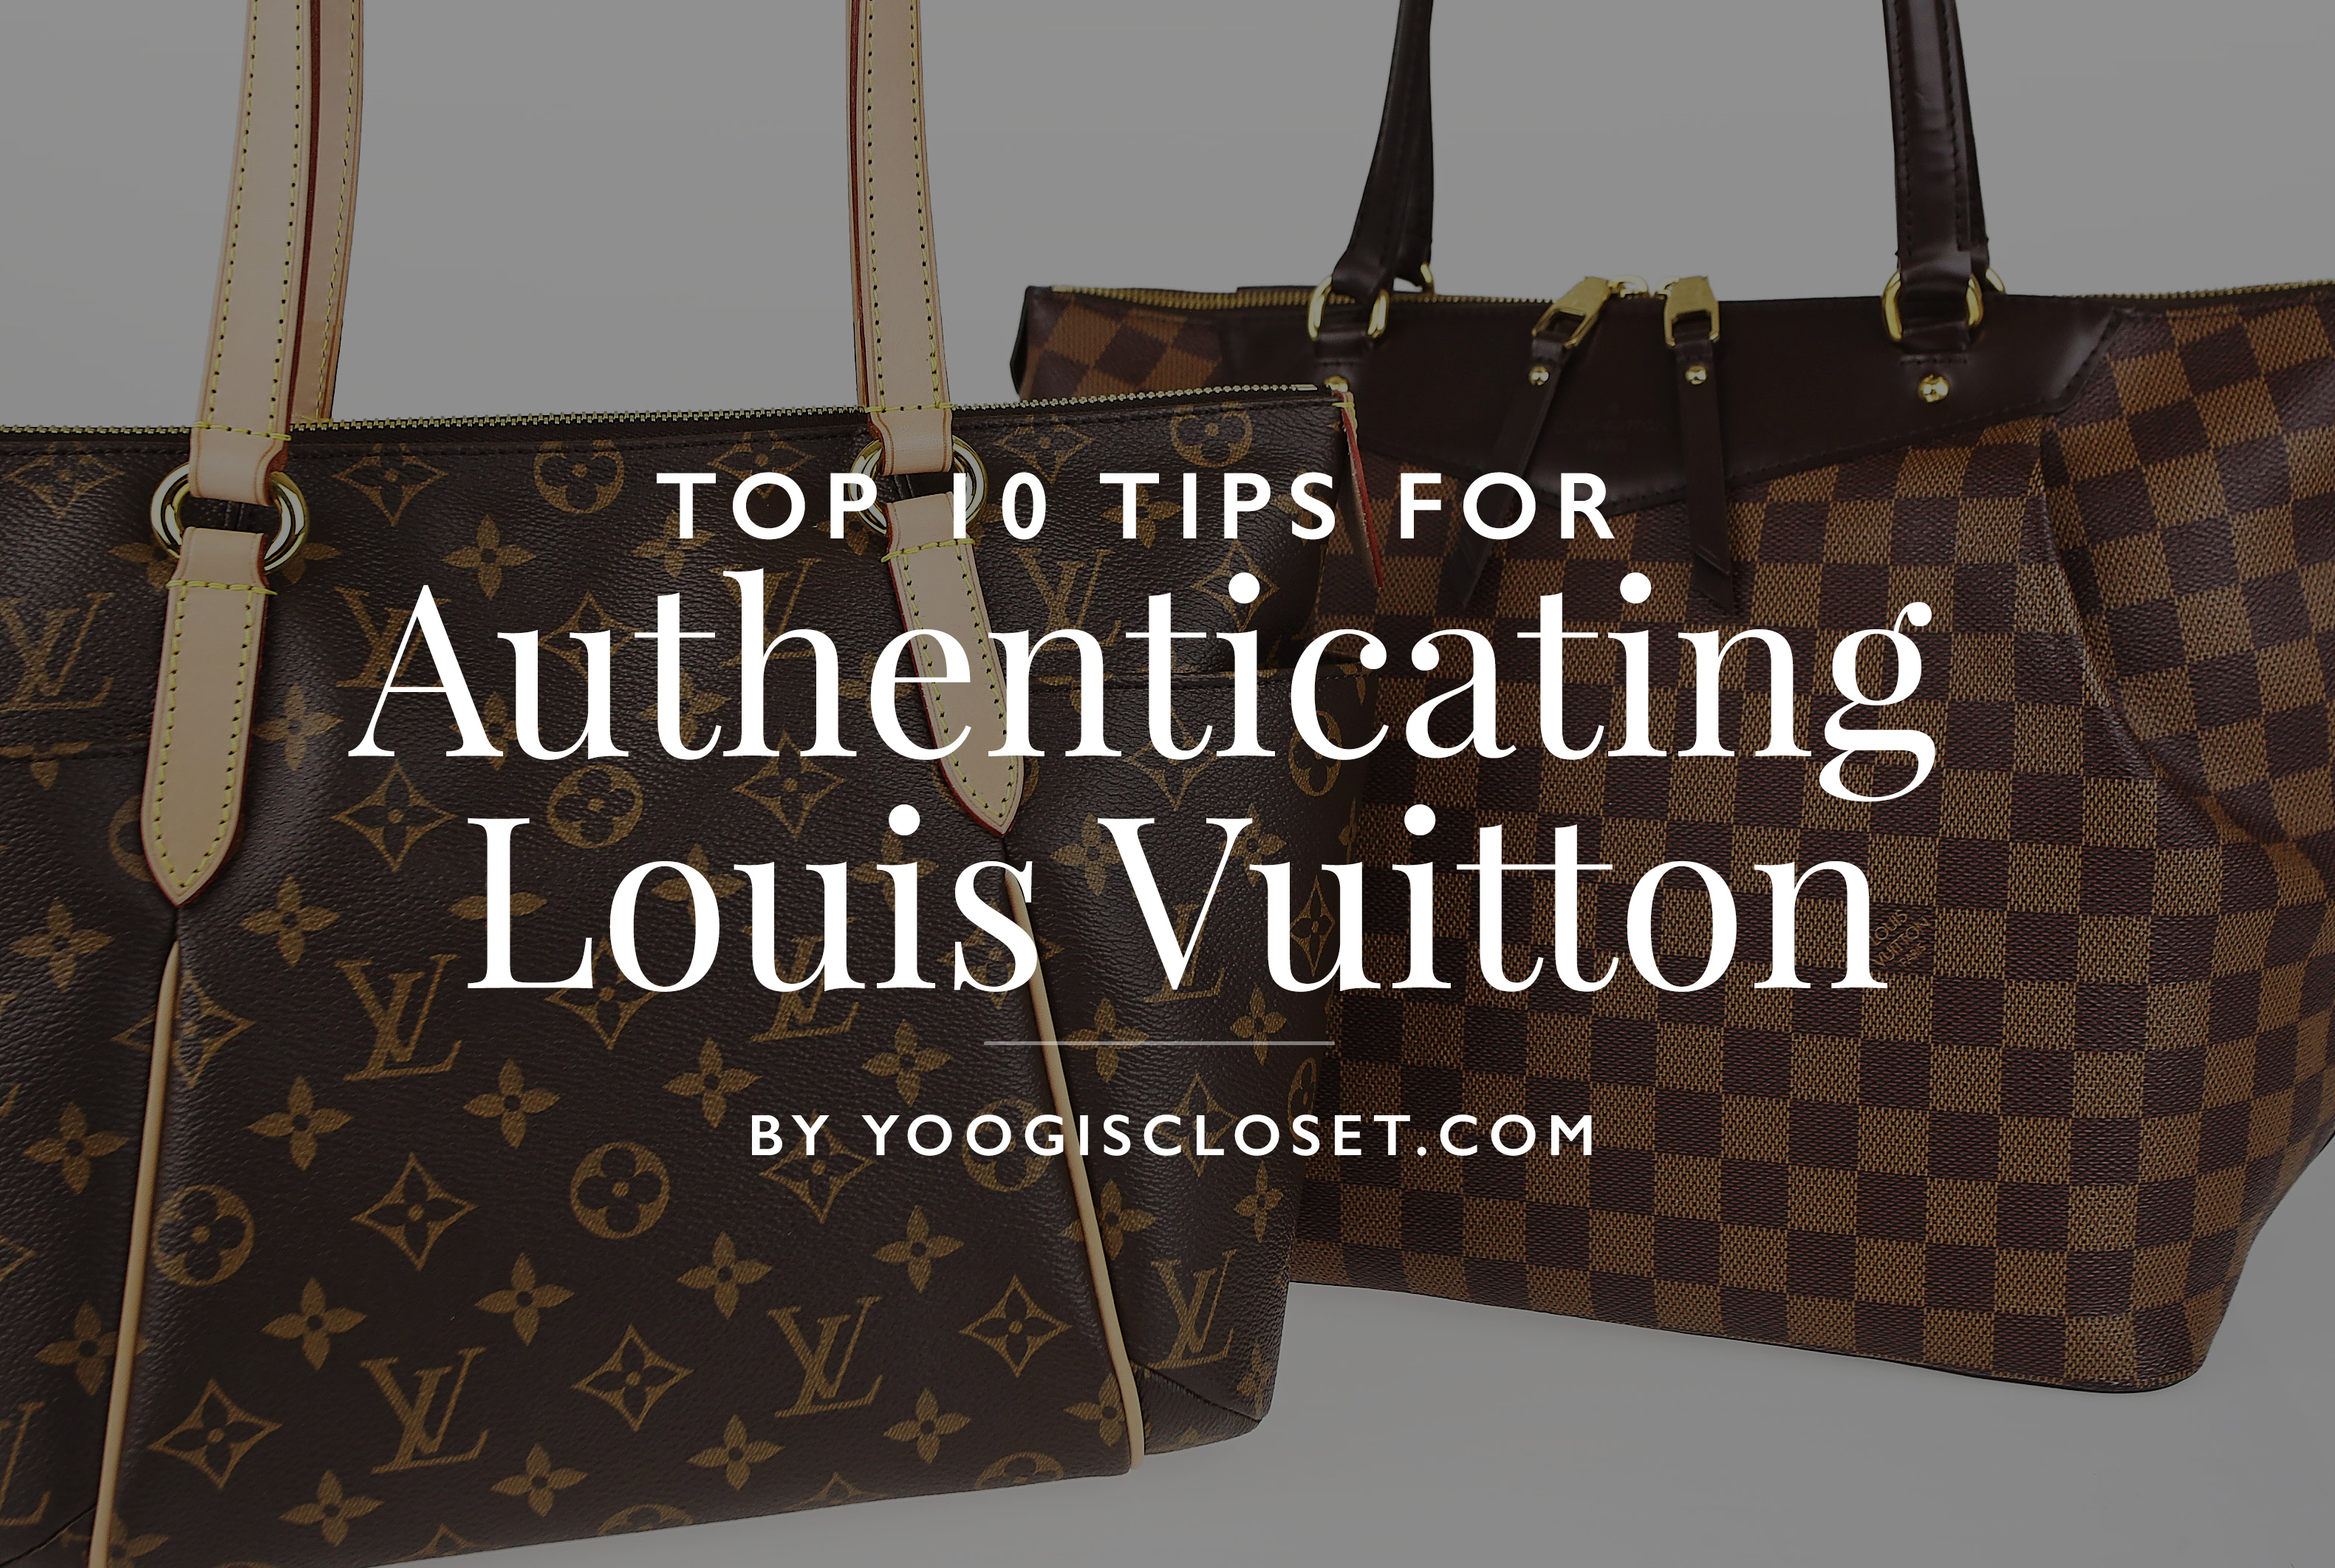 45703ee115f9 Top 10 Tips For Authenticating Louis Vuitton - Yoogi s Closet Blog